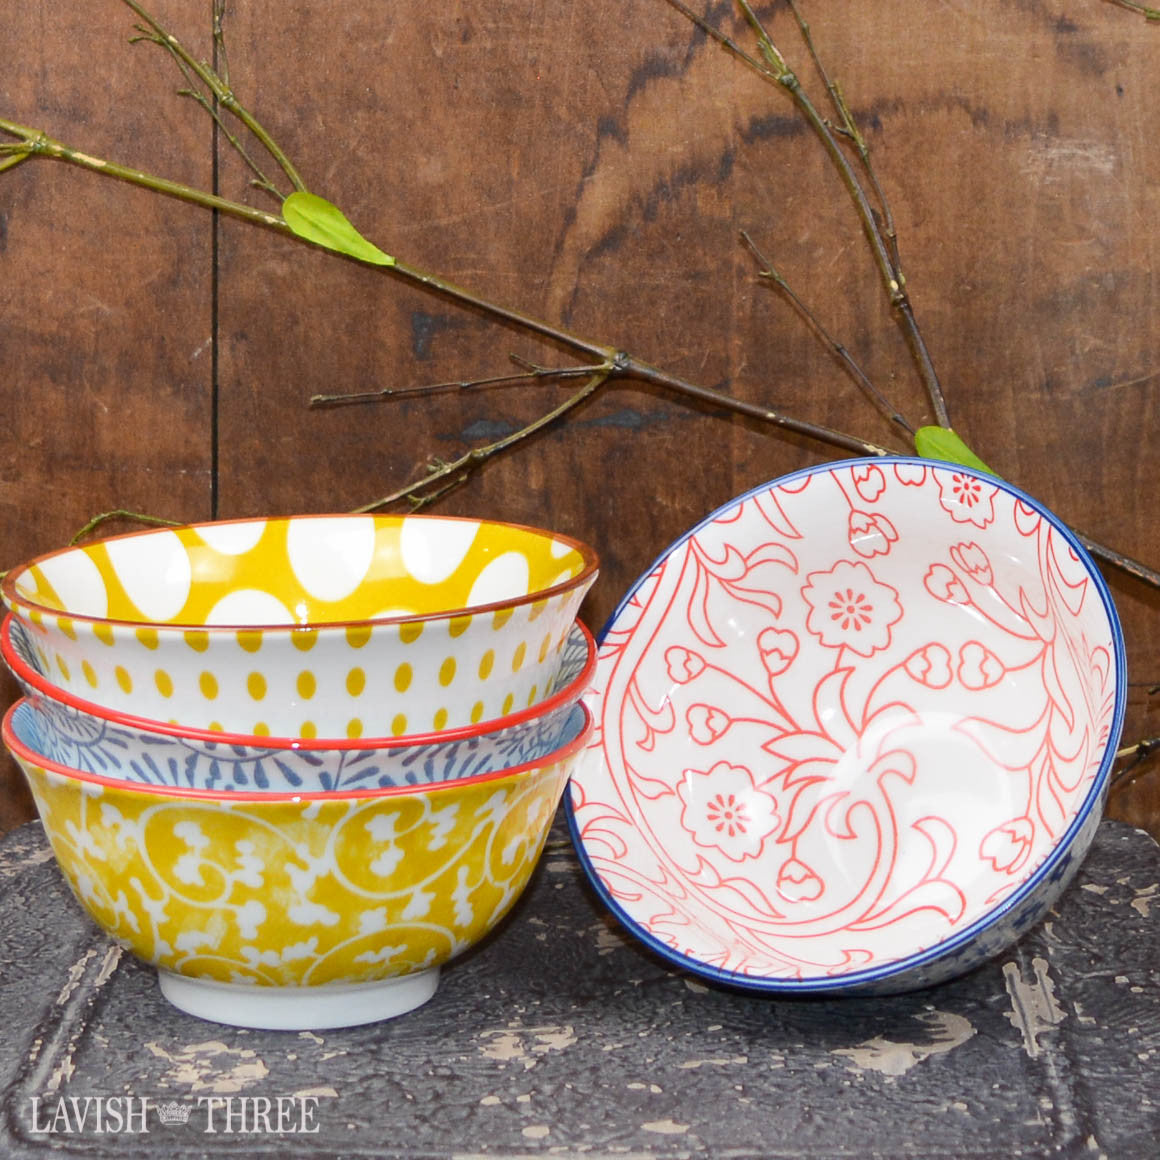 Whimsy printed eclectic bowls colorful pattern design lavish three 3